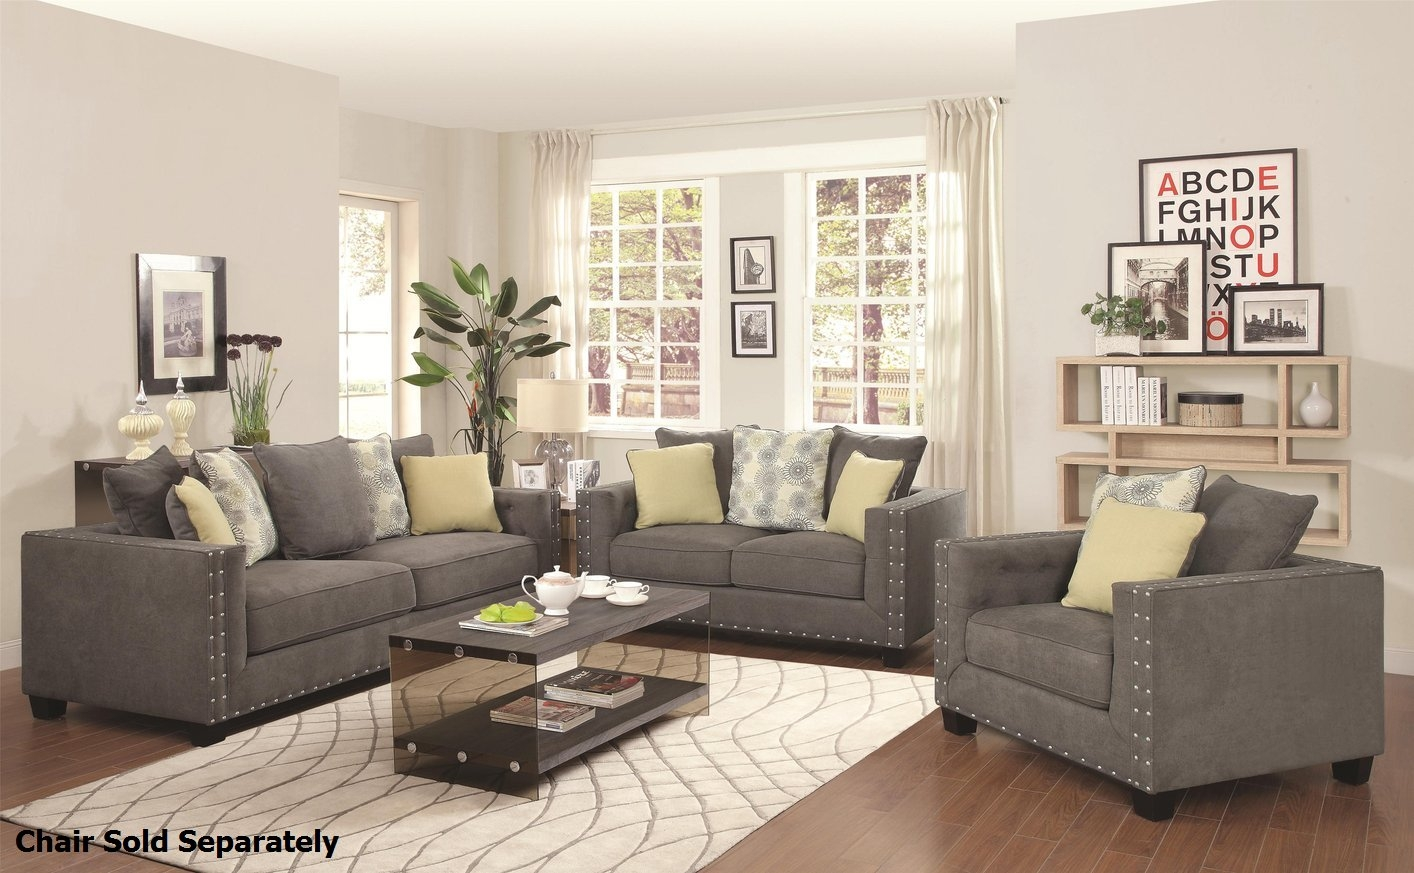 Coaster Kelvington 501421 501422 Grey Fabric Reclining Sofa And Within Sofa Loveseat And Chairs (Image 4 of 15)